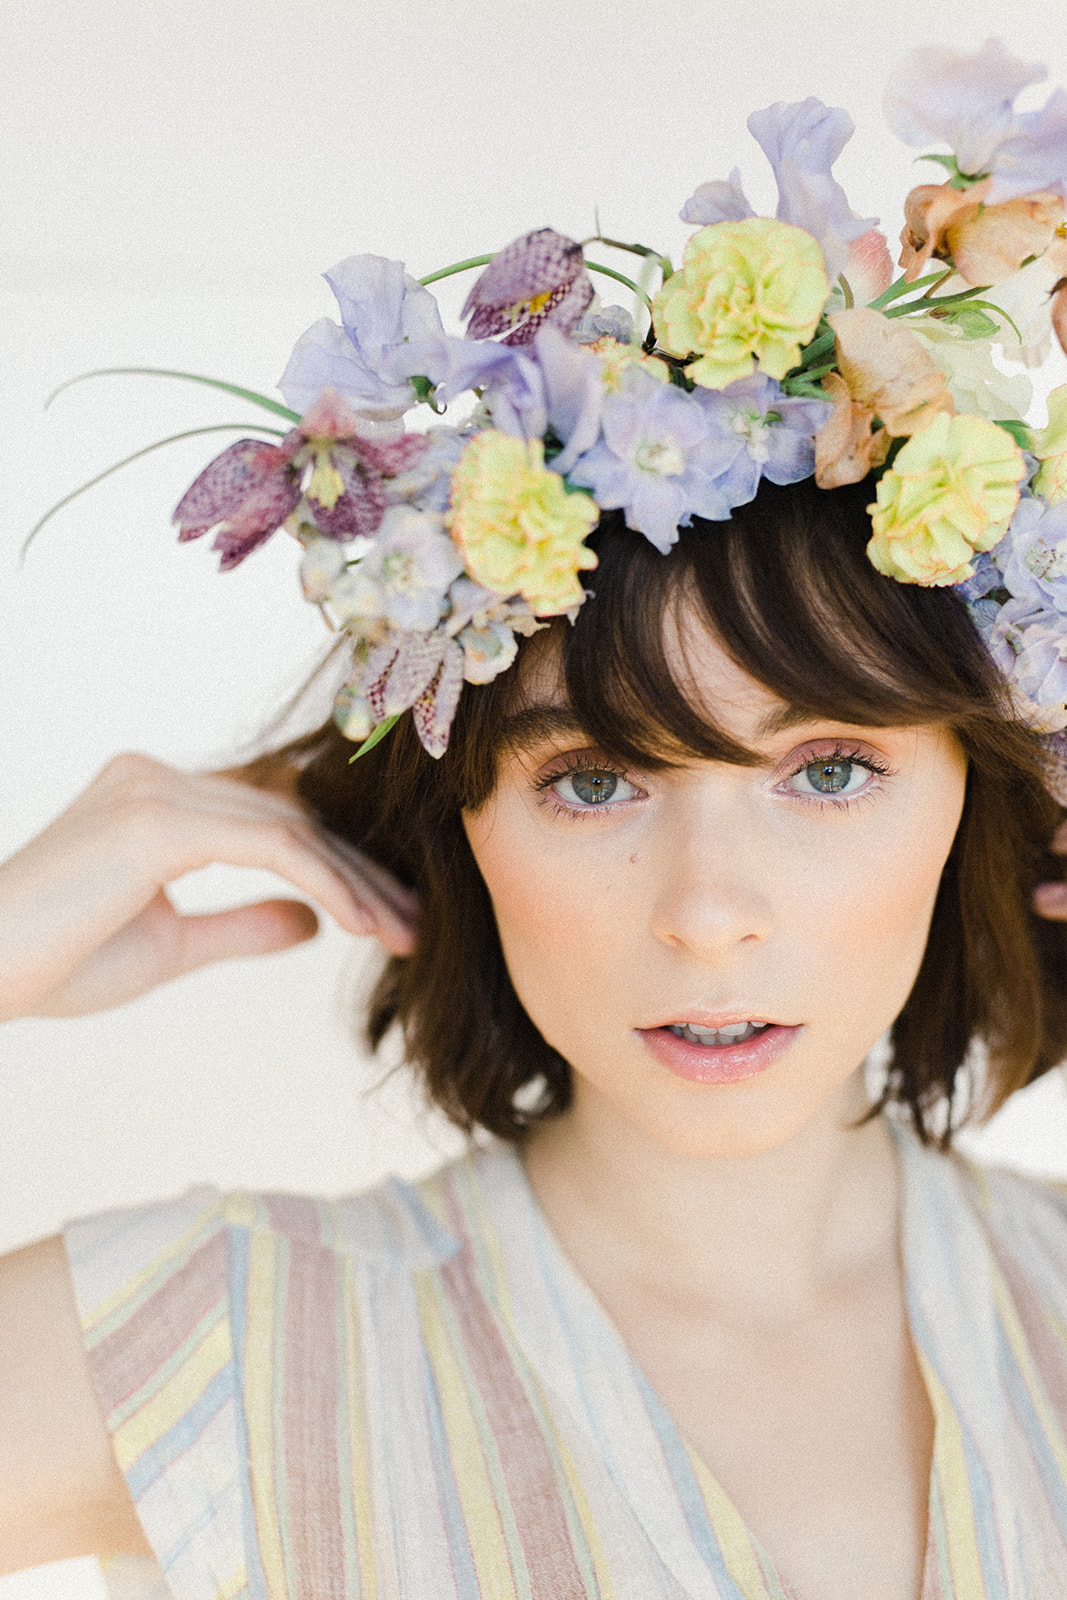 Flower-Crown-Shoot1-5.jpg